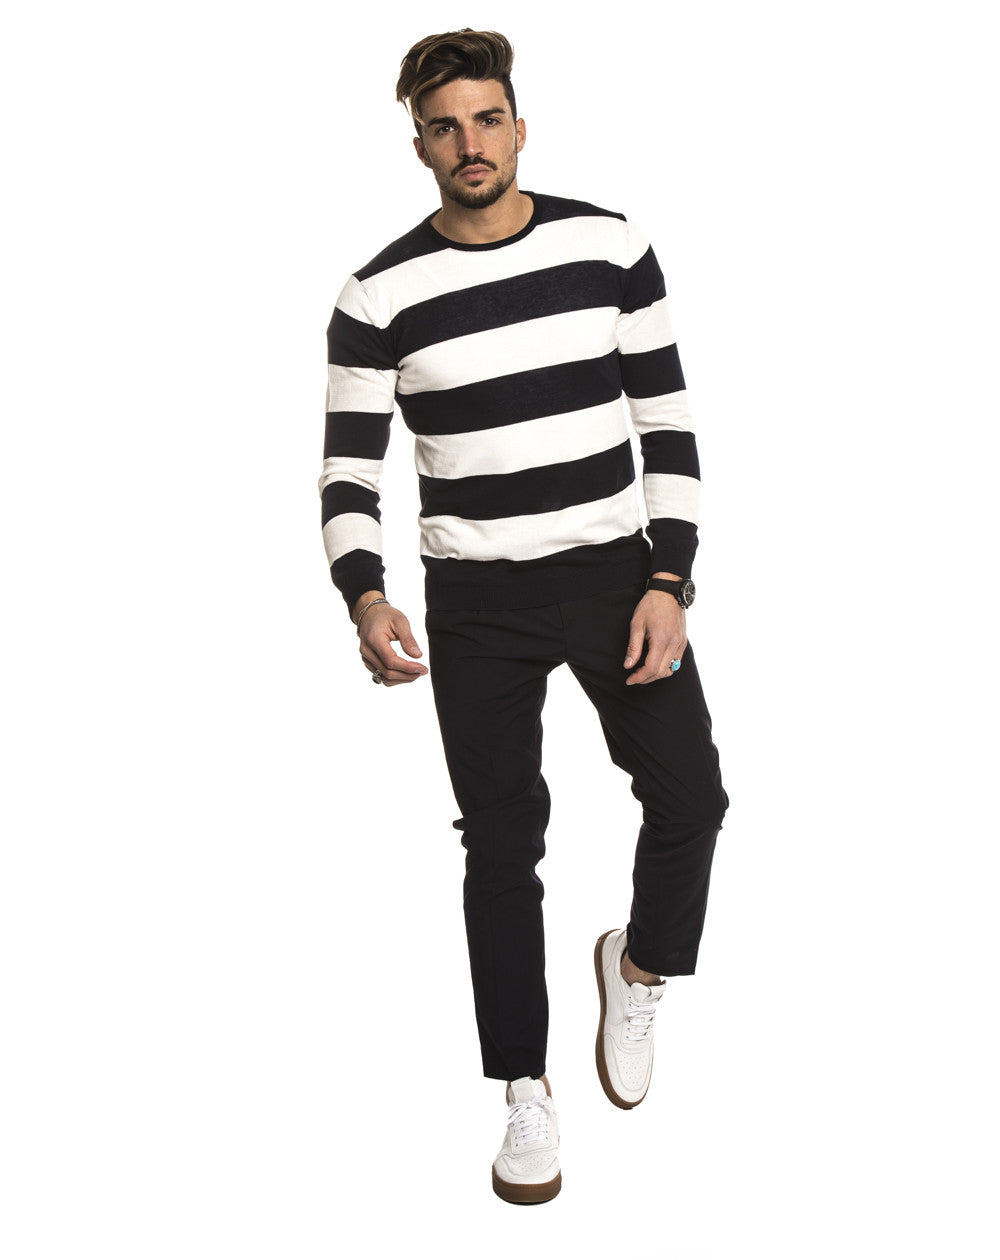 MEN'S CLOTHING | WHITE AND BLUE STRIPED SWEATER | CREW NECK | LONG SLEEVE | RIBBED CUFFS | RIBBED HEM | COTTON | MARIANO DI VAIO | NOHOW STREET COUTURE | NOHOW